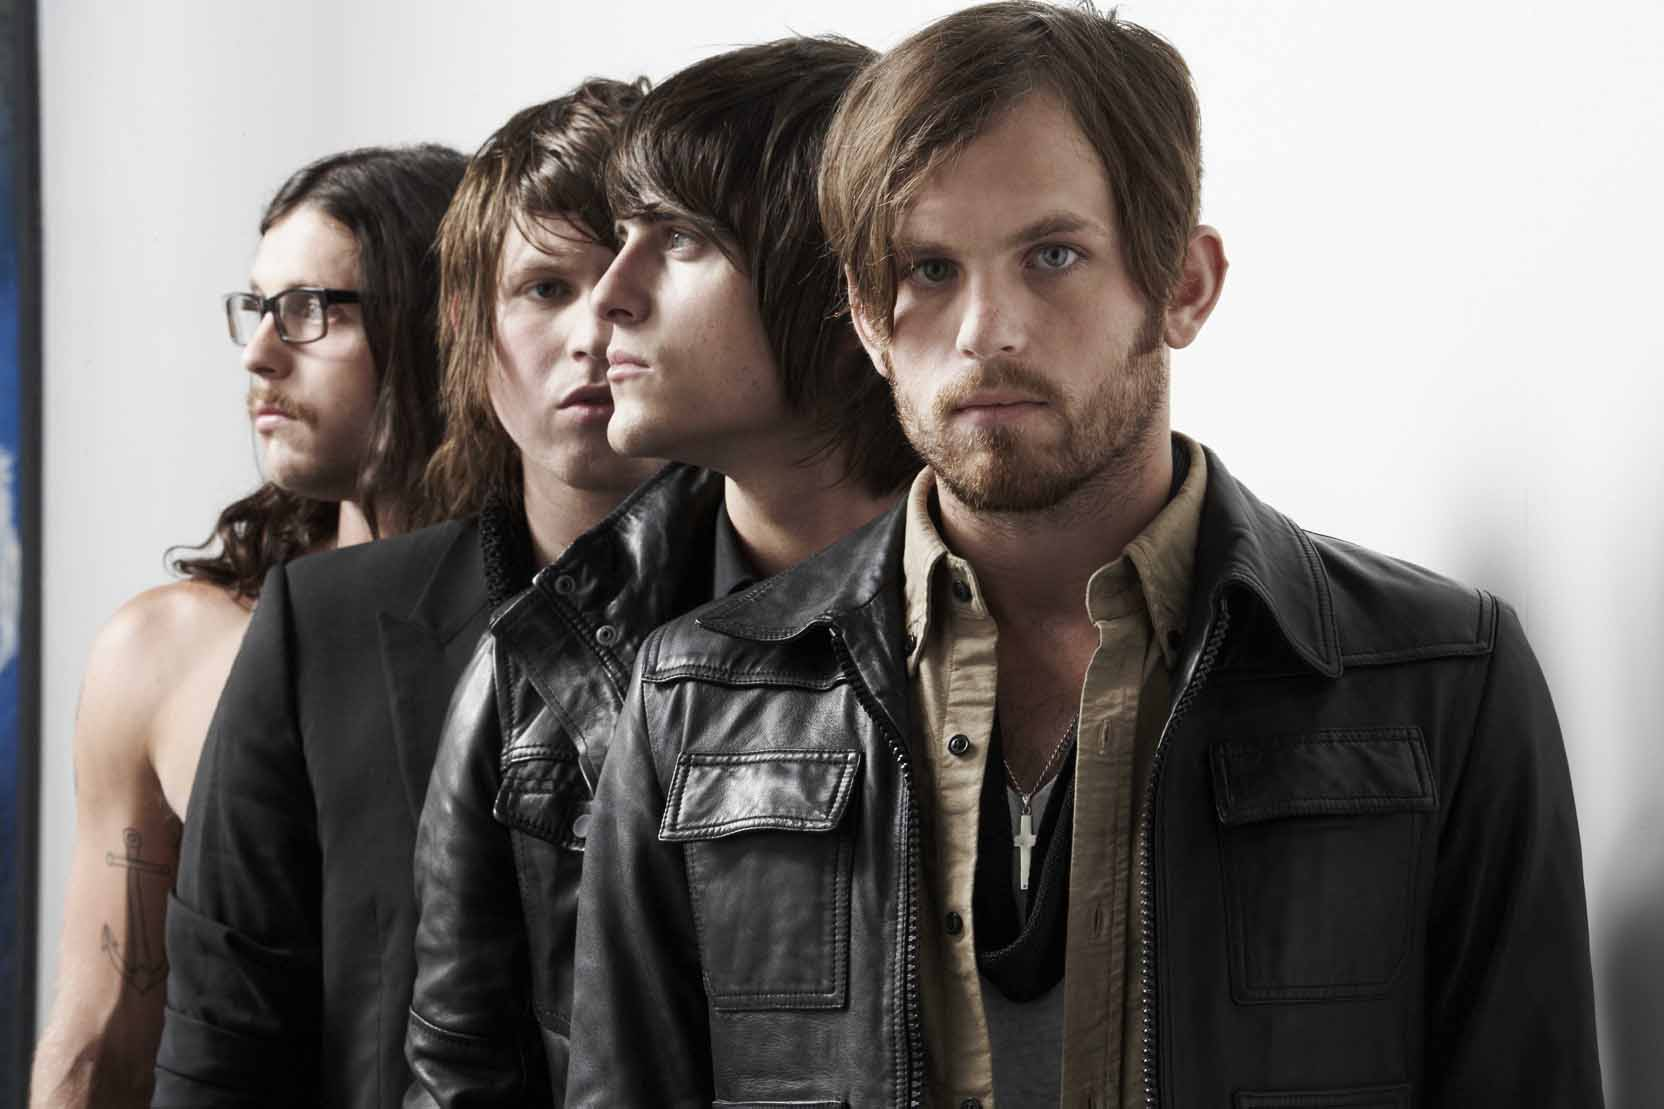 Only kings of Leon concert in Spain to be taking place in the Palacio de Vistalegre, Madrid